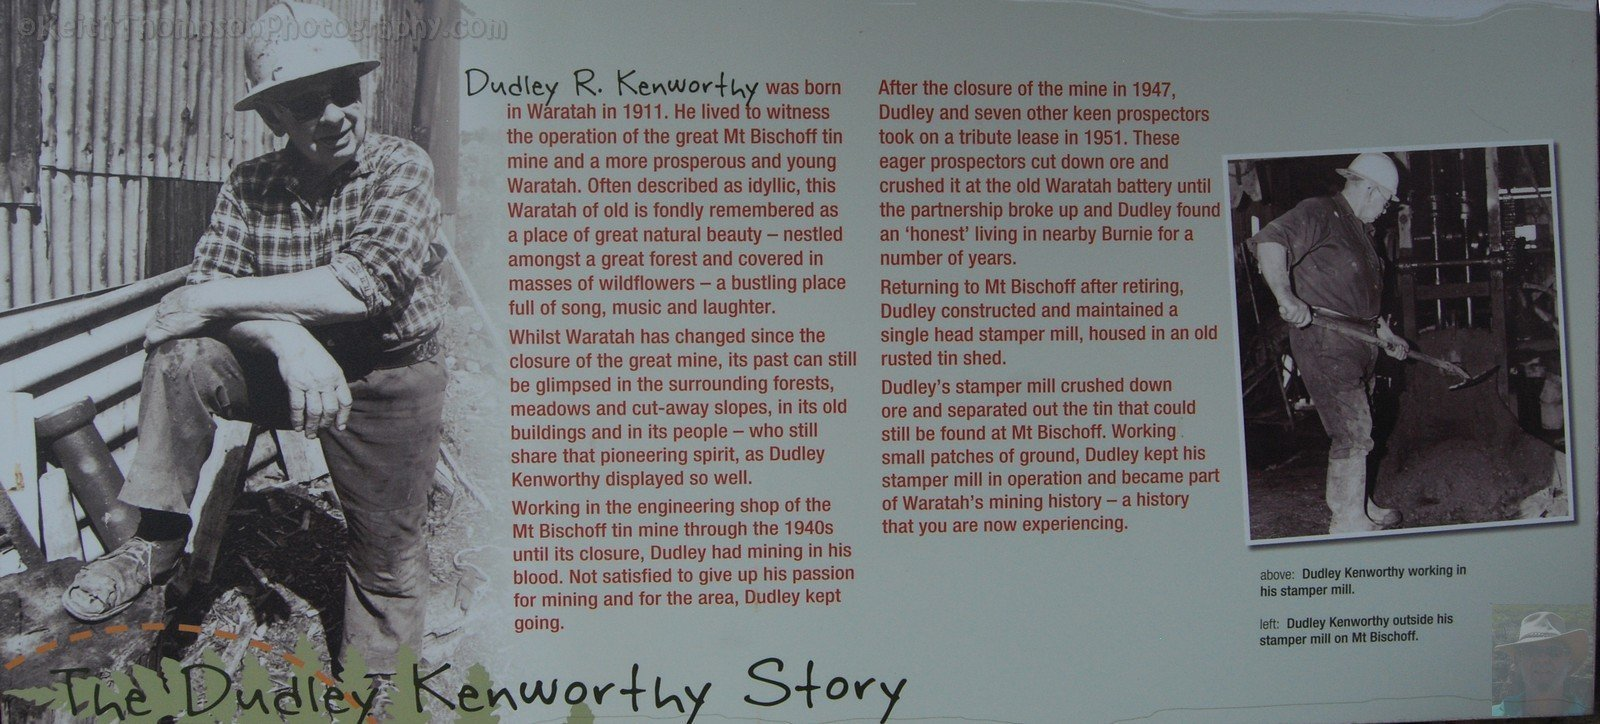 The Dudley Kenworthy Story